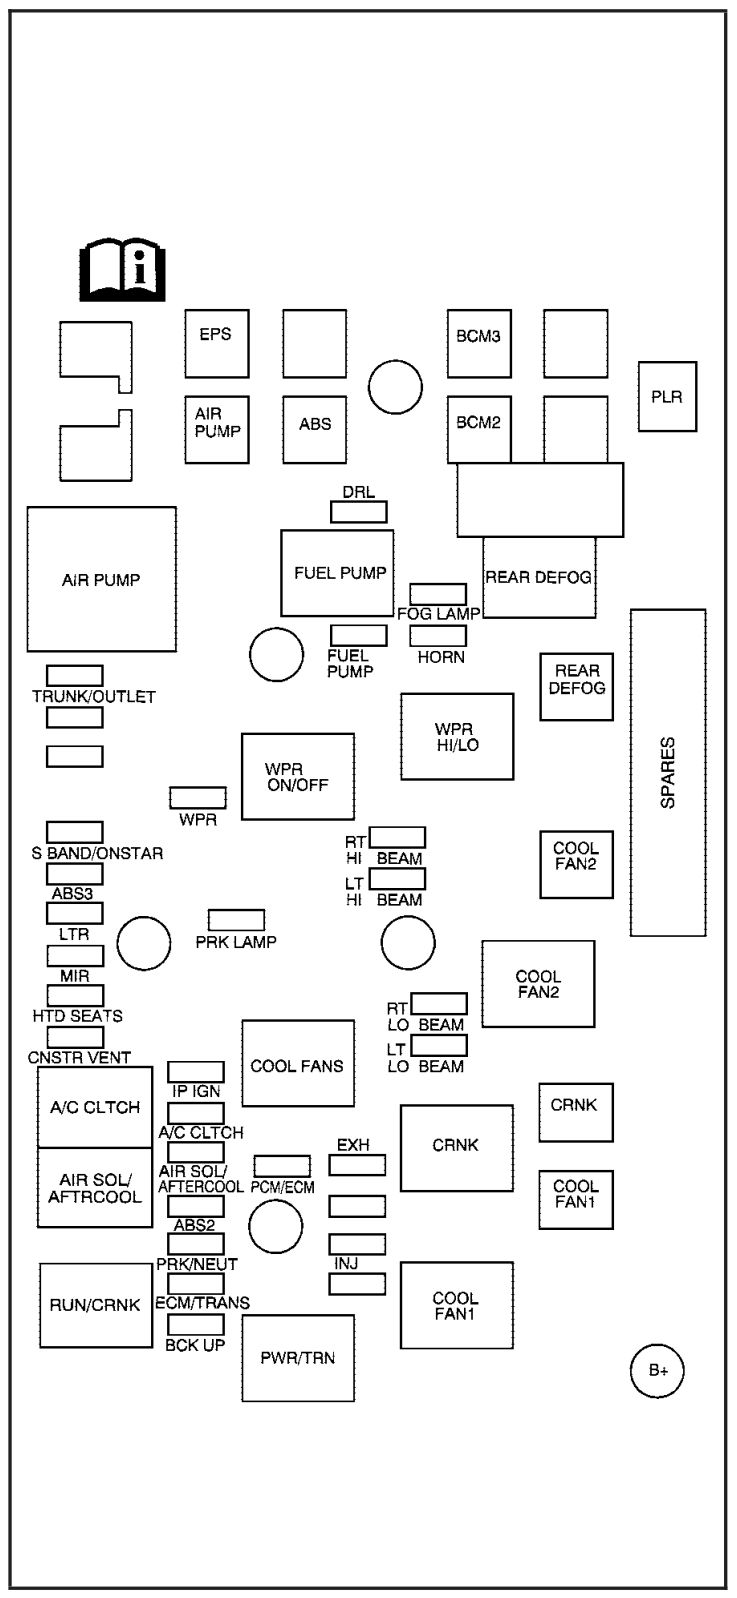 Pontiac G5  2007  - Fuse Box Diagram